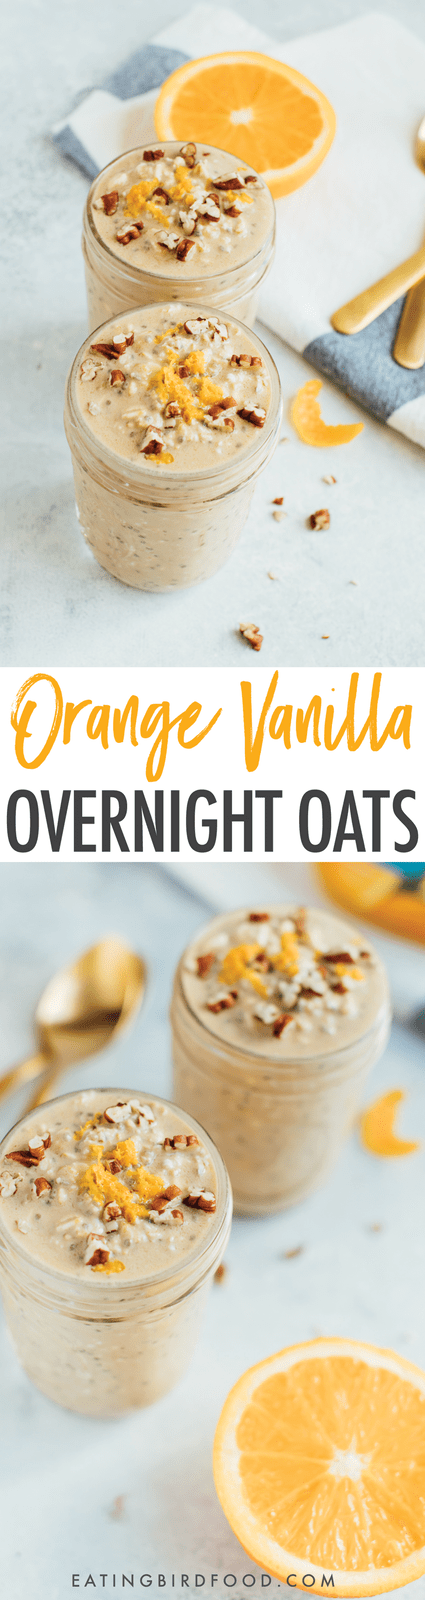 These vanilla orange overnight oats combine the bright citrus flavor of orange juice with hints of vanilla for a delicious, make-ahead breakfast.